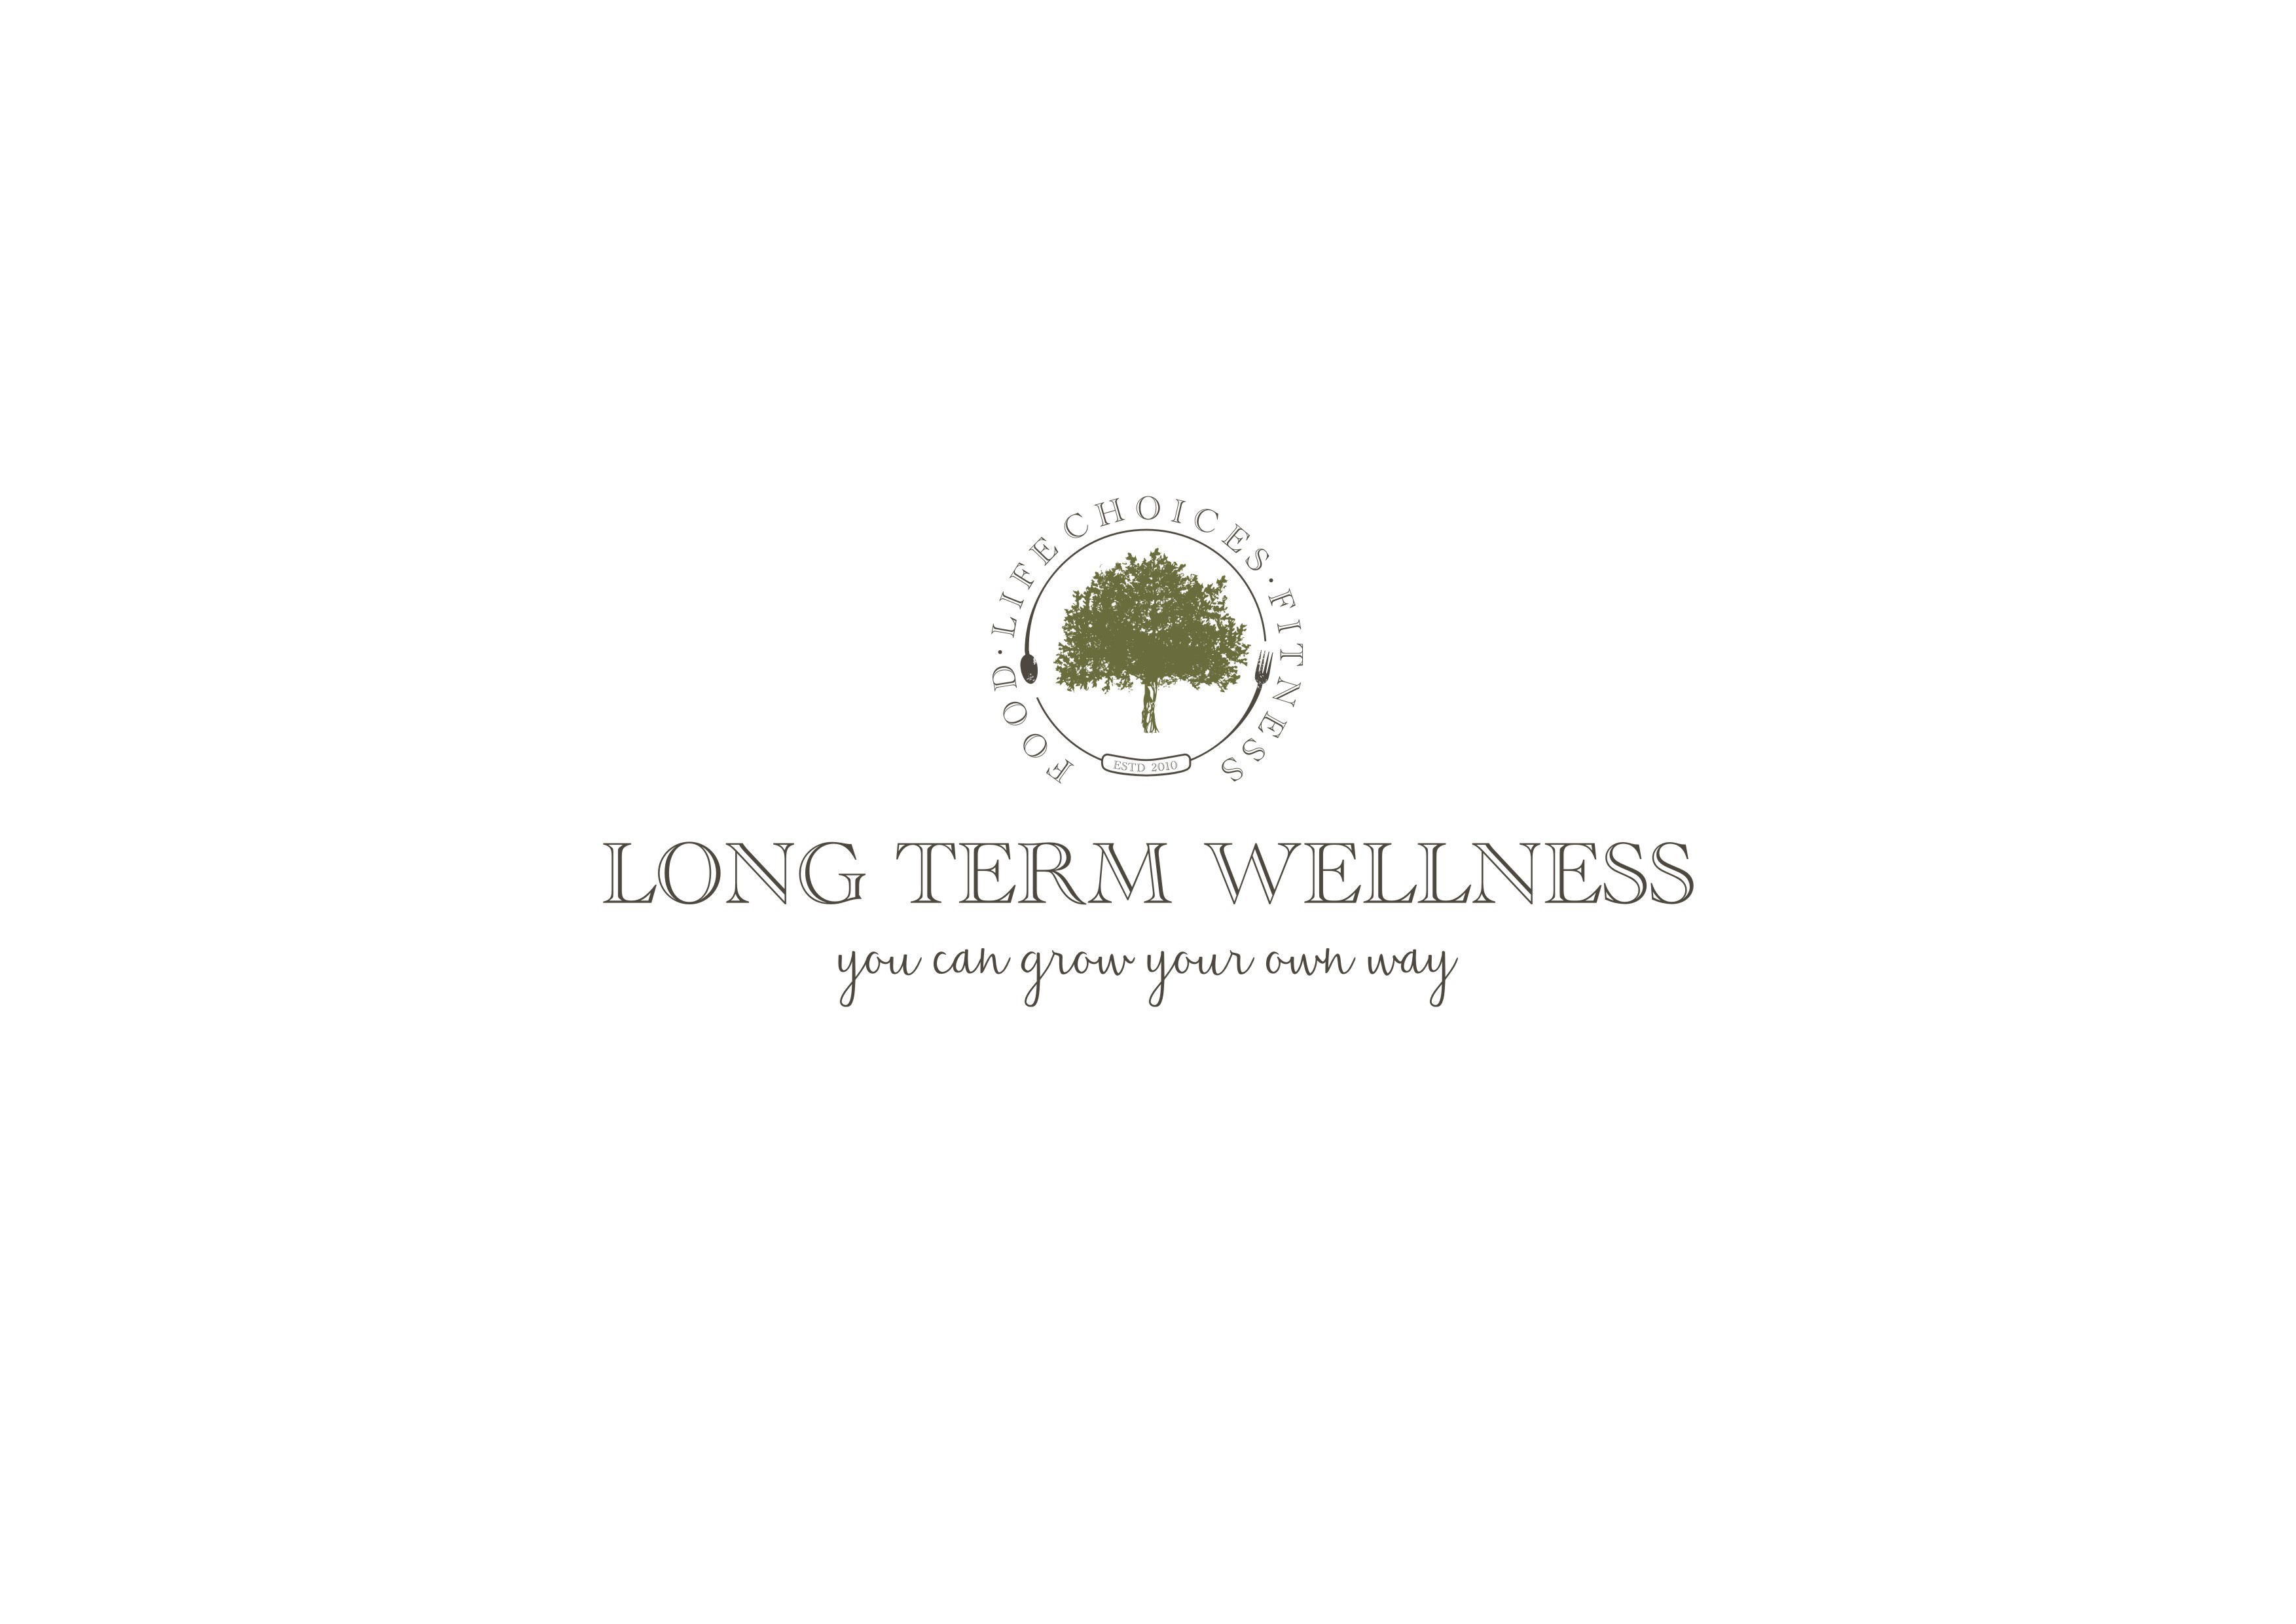 More than FOOD - Create a simple but classic brand logo for a holistic nutrition/wellness consultant